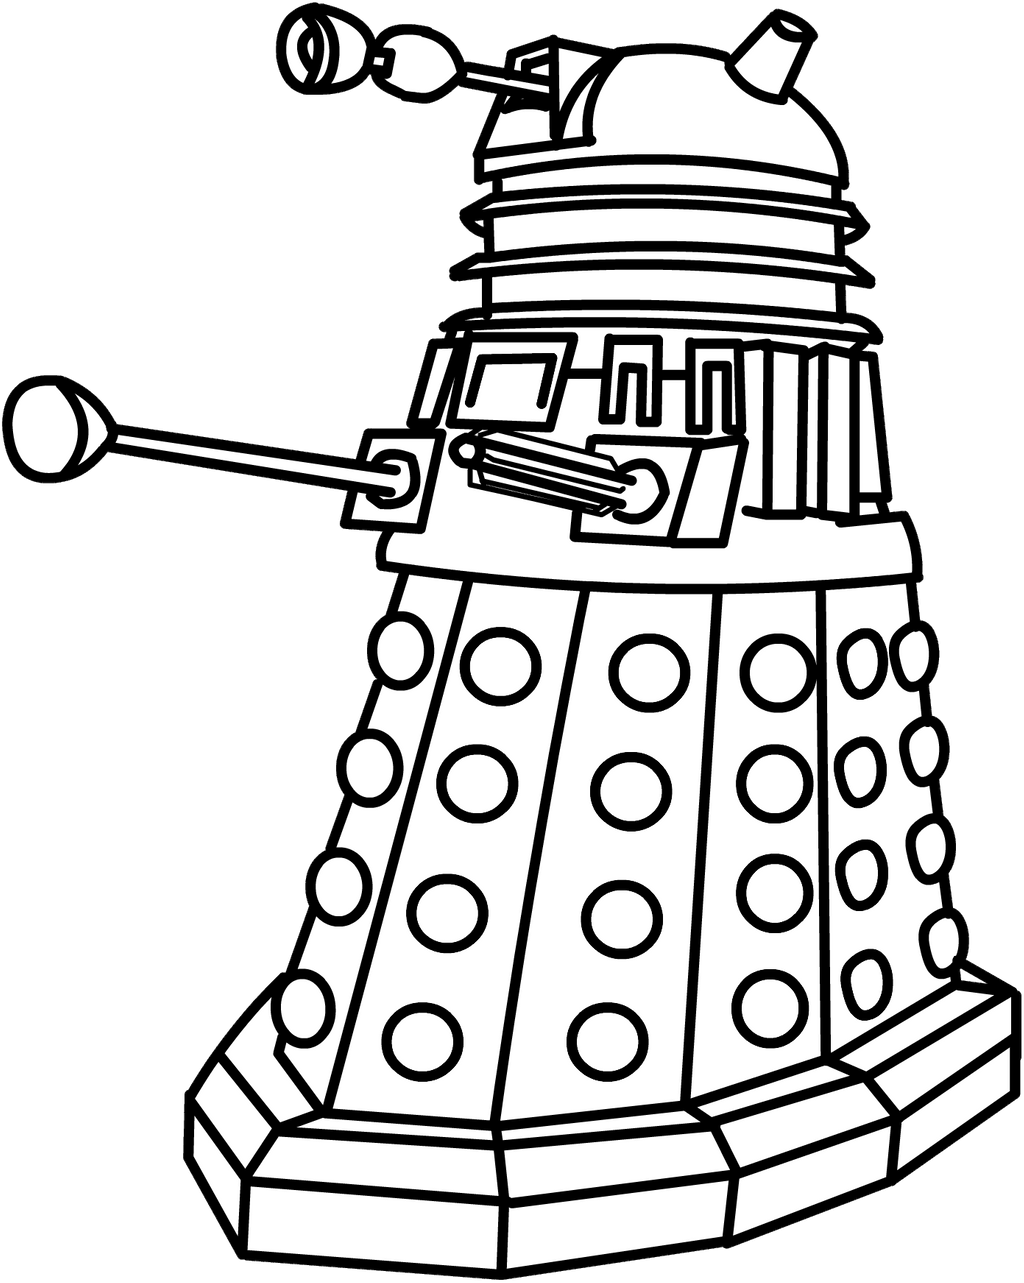 dalek colouring pages strange magic new monster the dalek dalek colouring pages